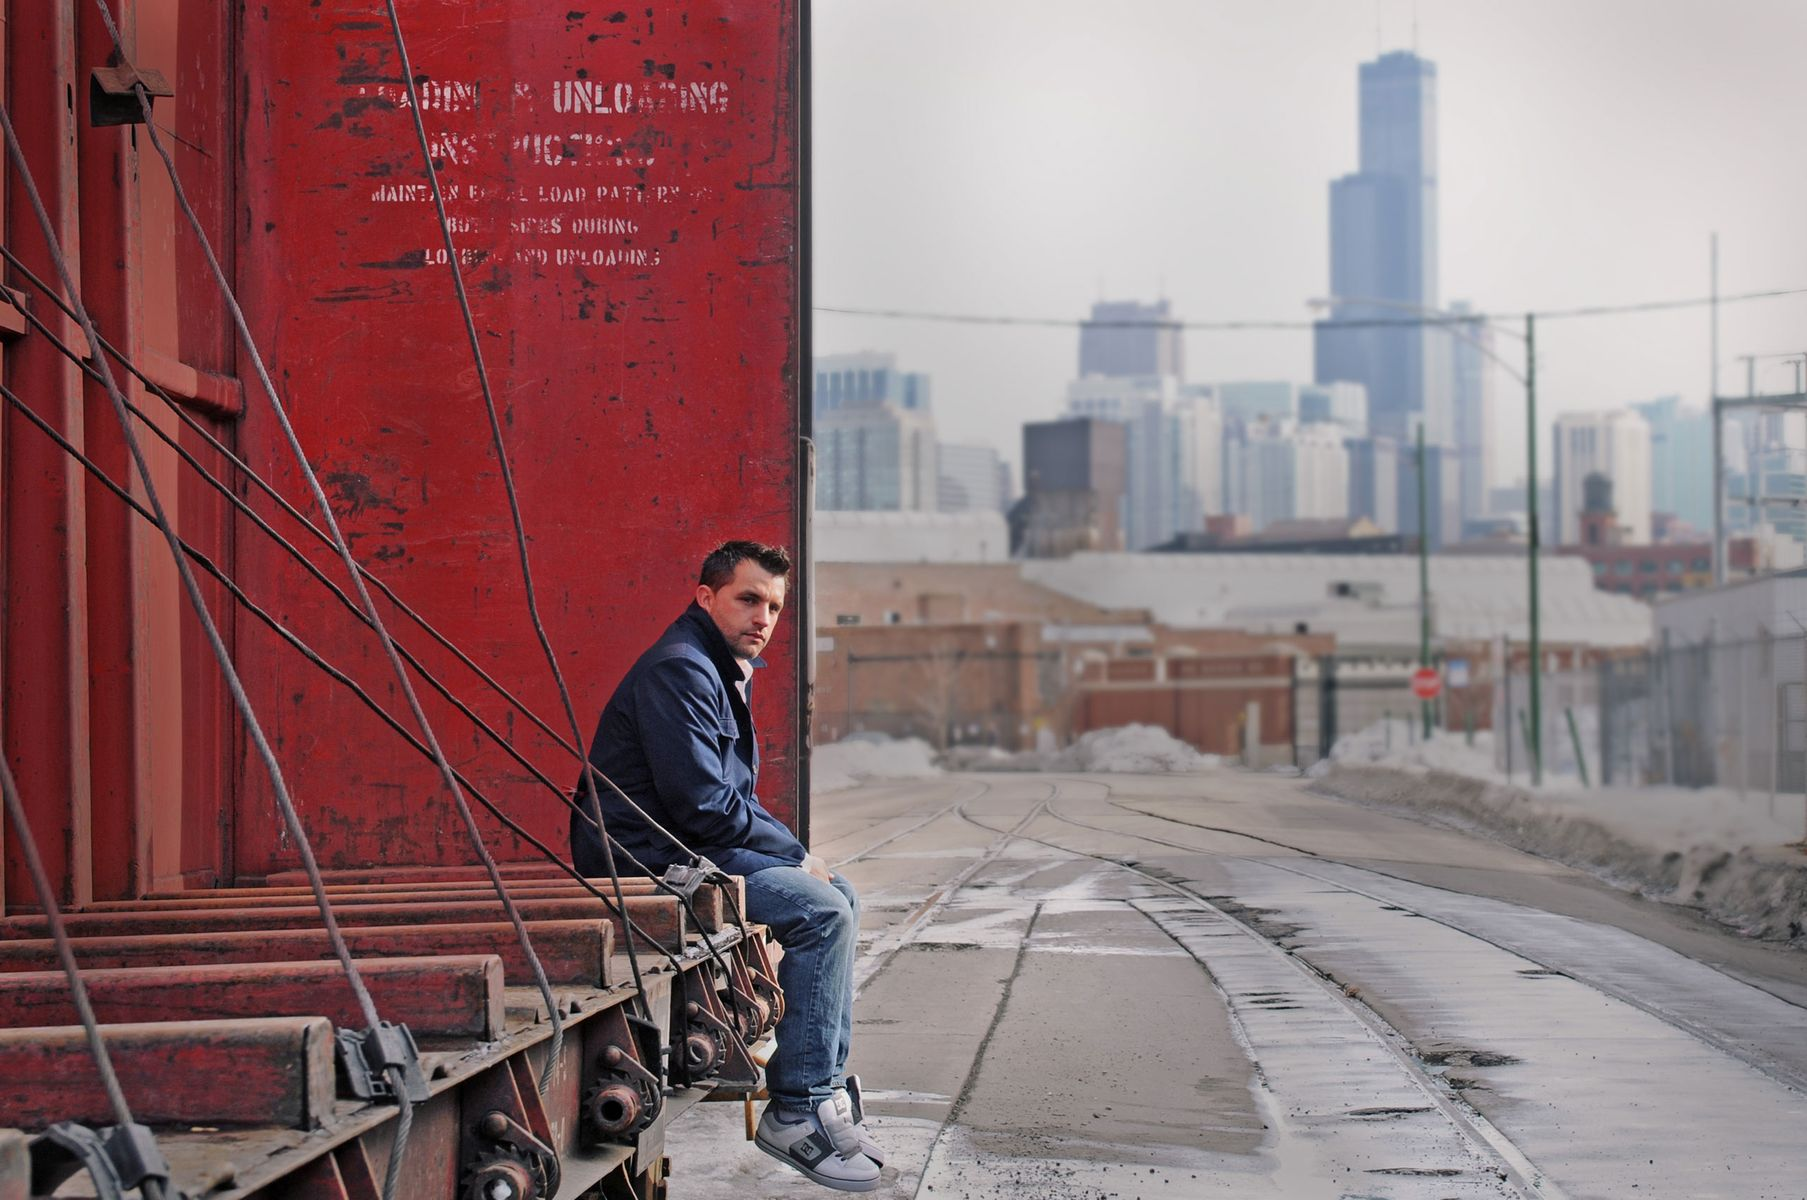 Album cover photo, Chicago musician Mic One